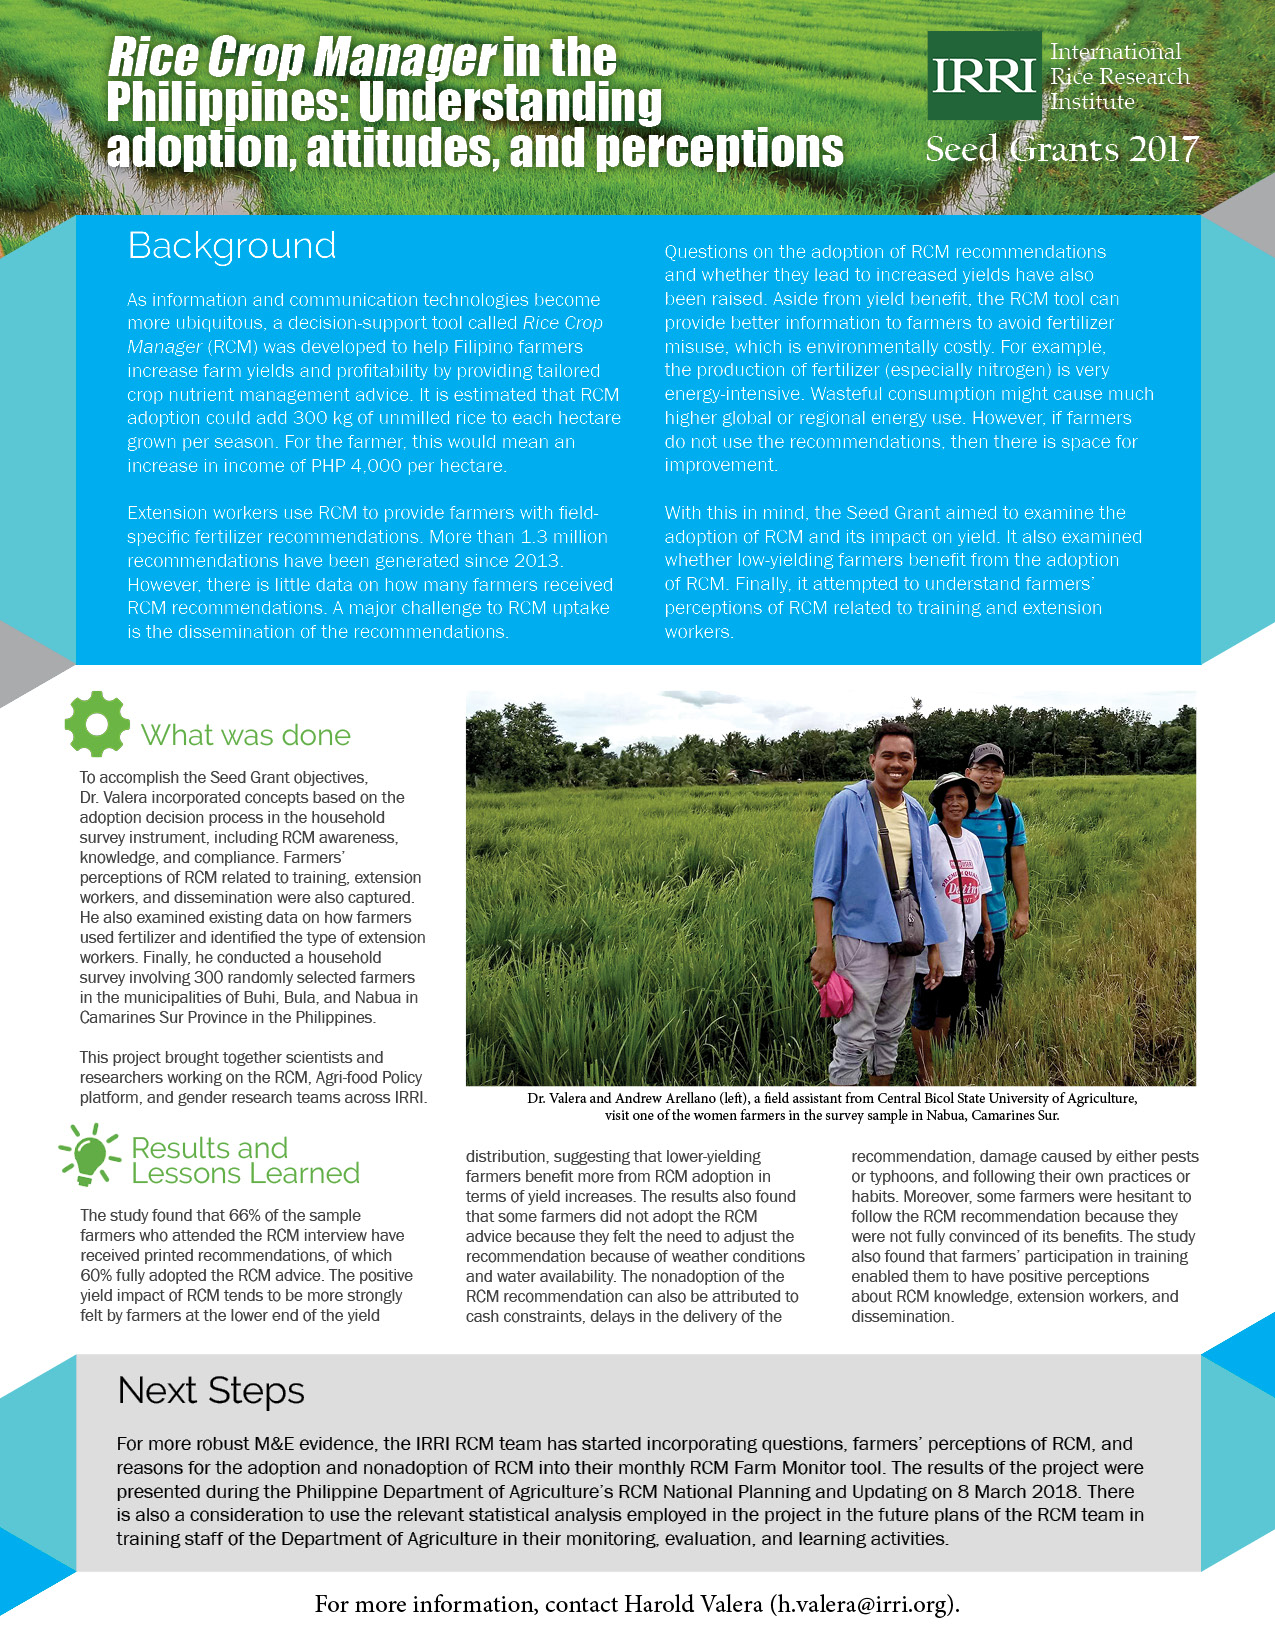 Rice Crop Manager in the Philippines: Understanding adoption, attitudes, and perceptions (Click to enlarge.)